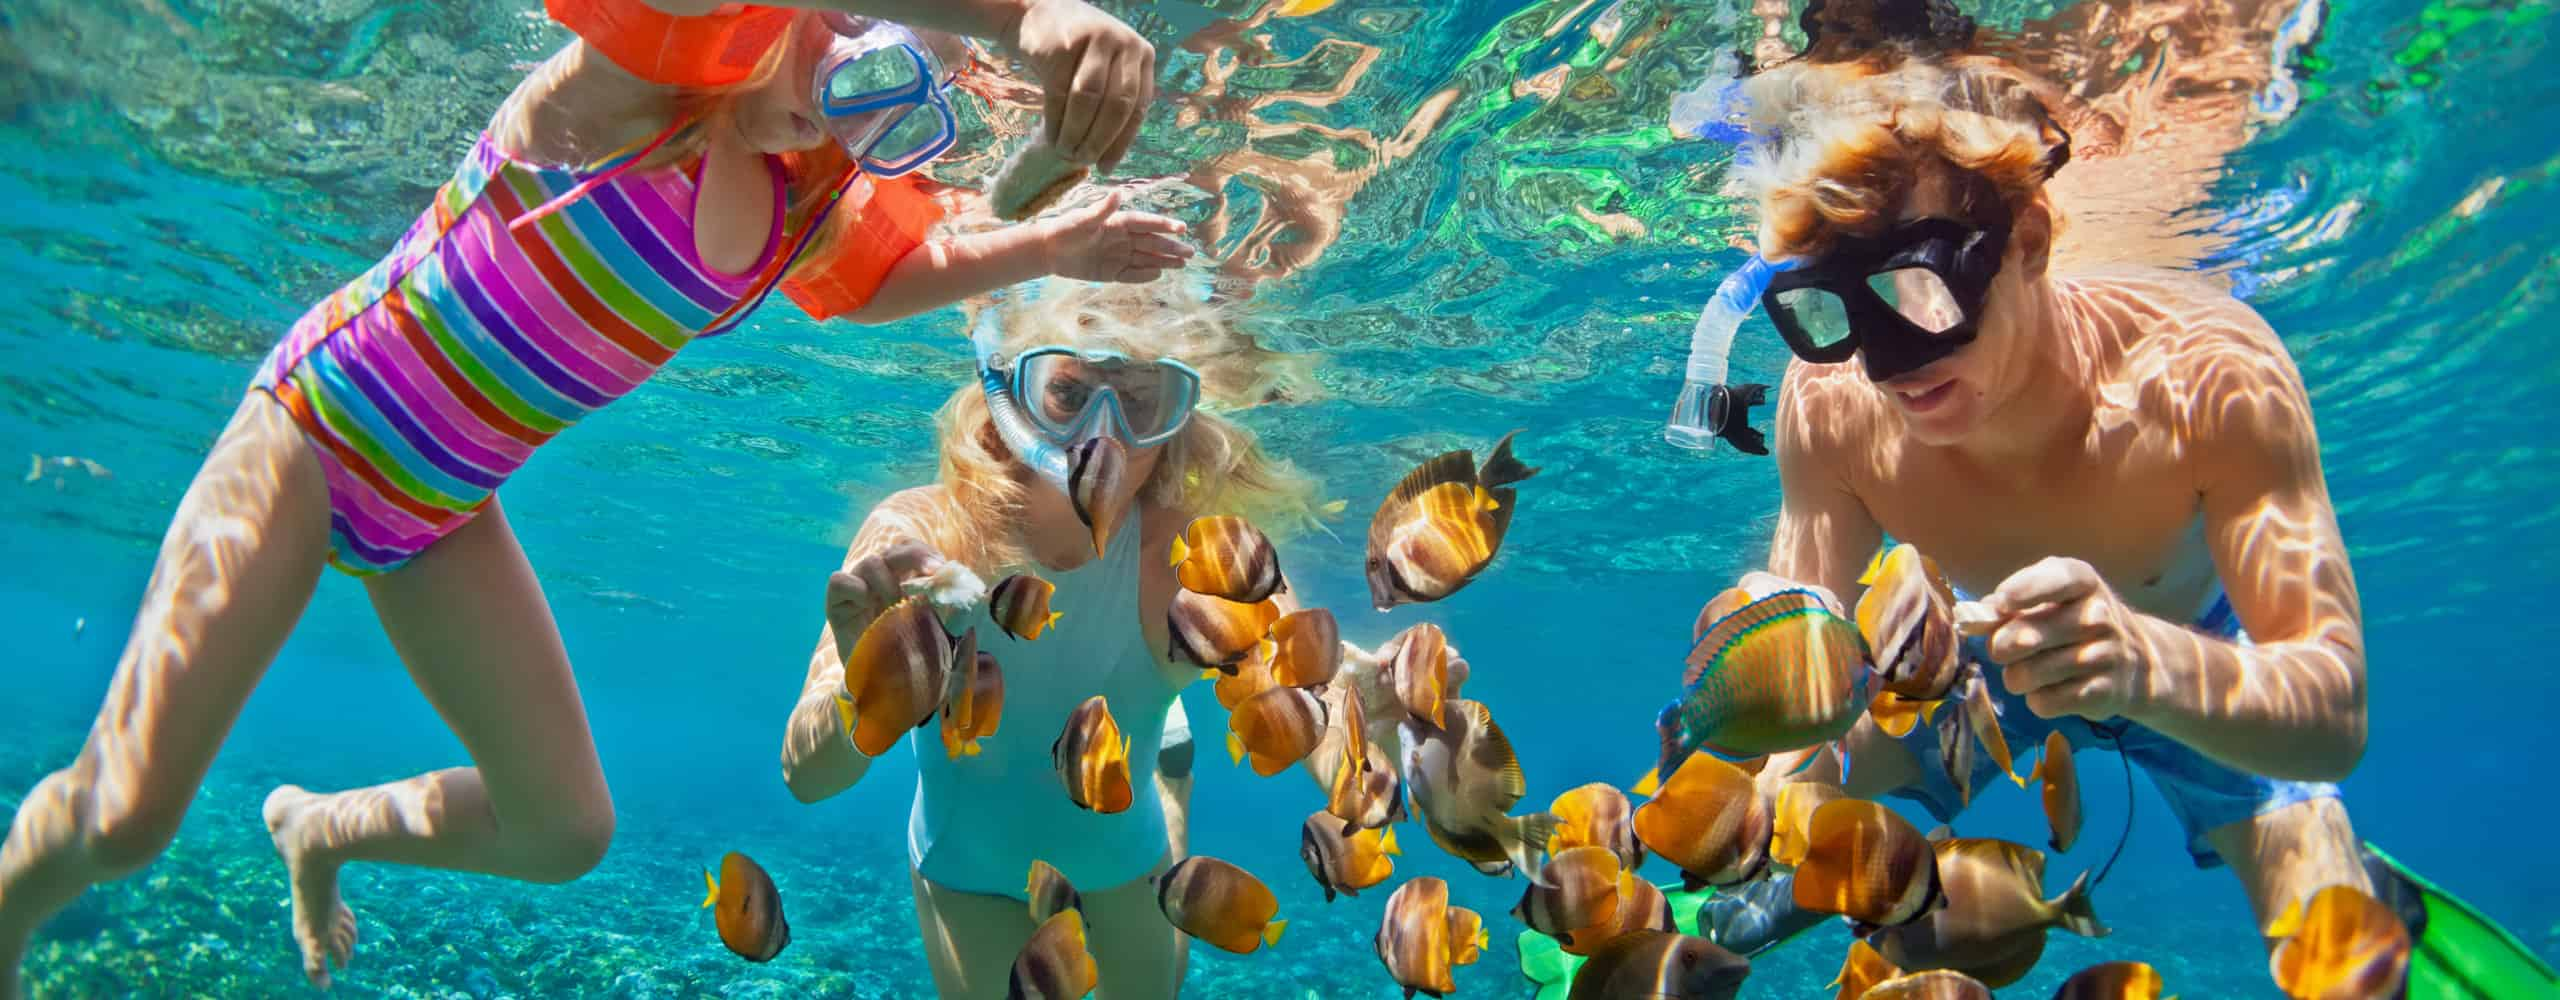 Family Snorkelling, Caribbean